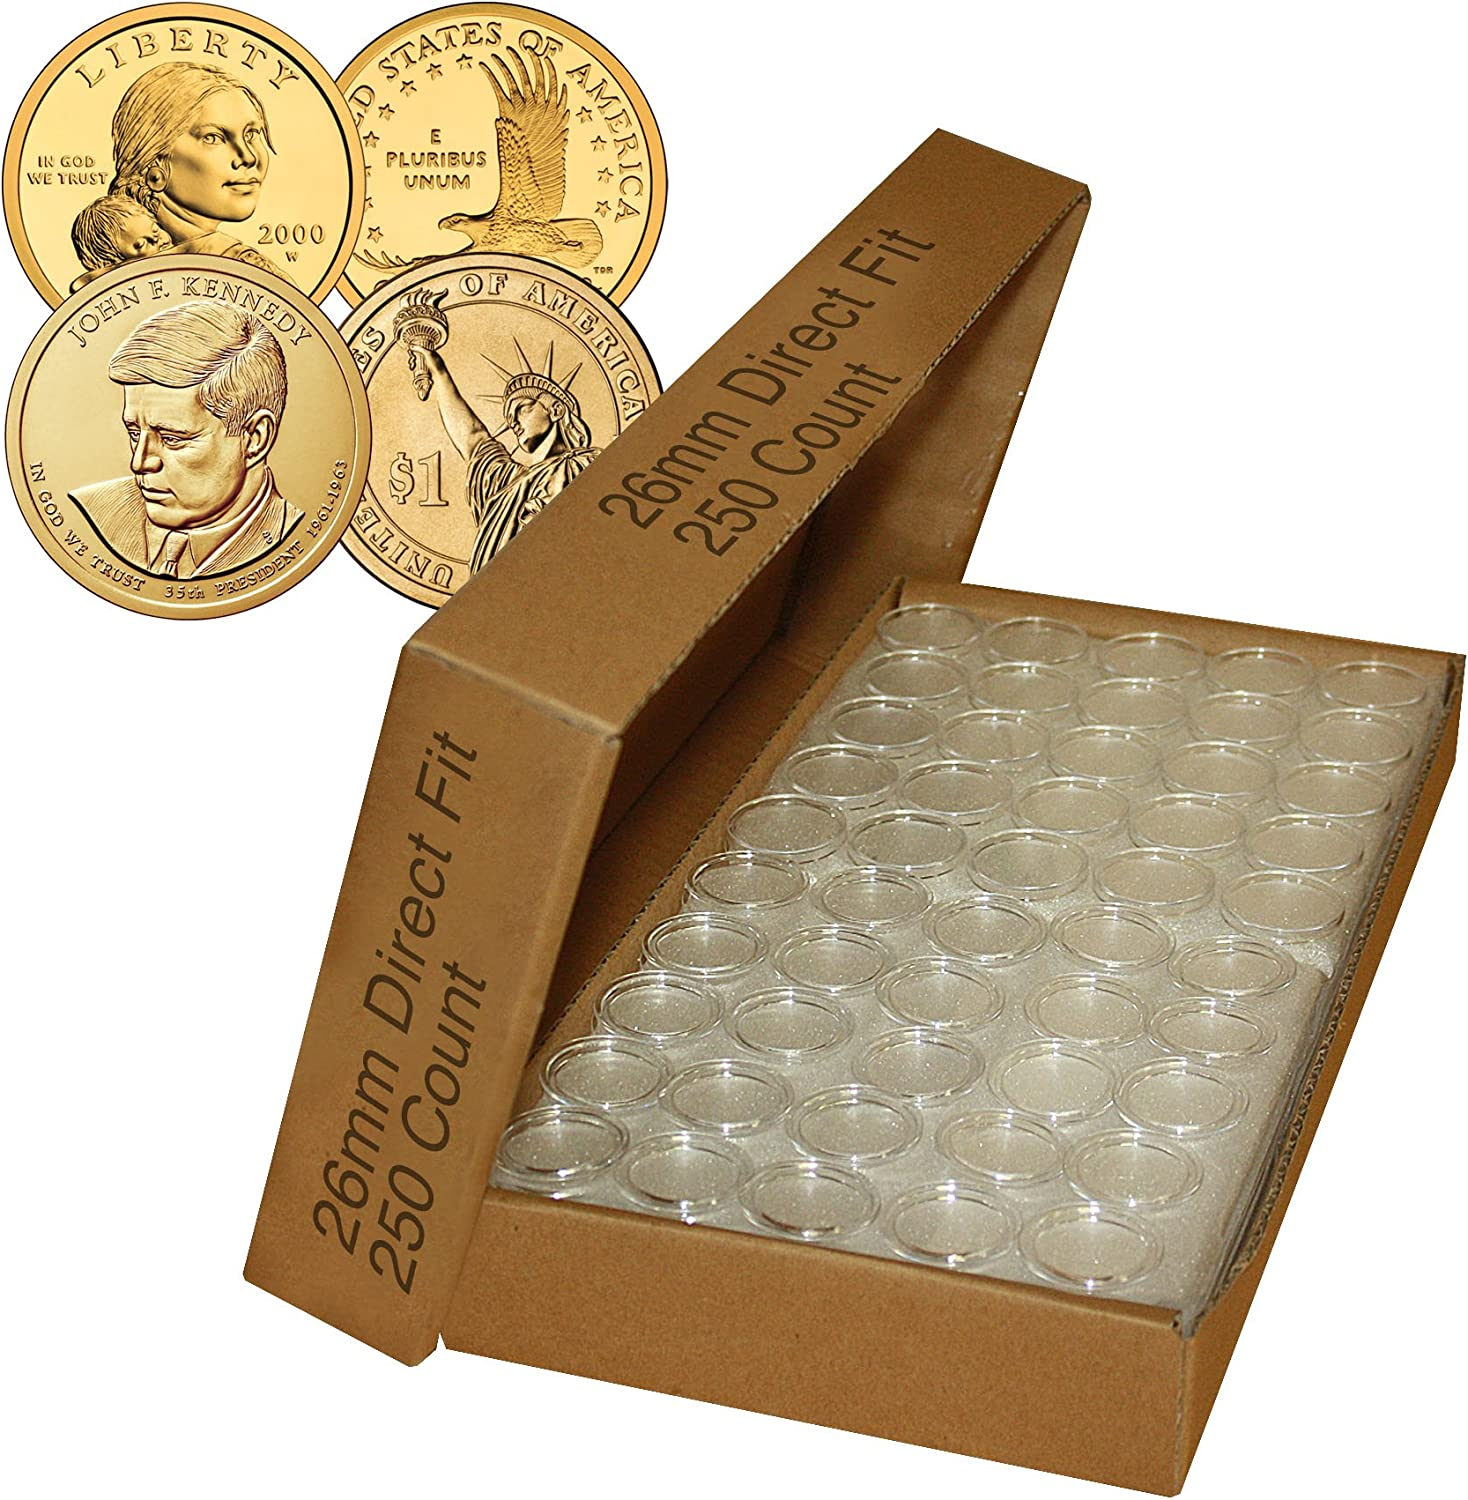 25 coin holders 30.6mm direct fit coin capsules for JFK HALF DOLLAR